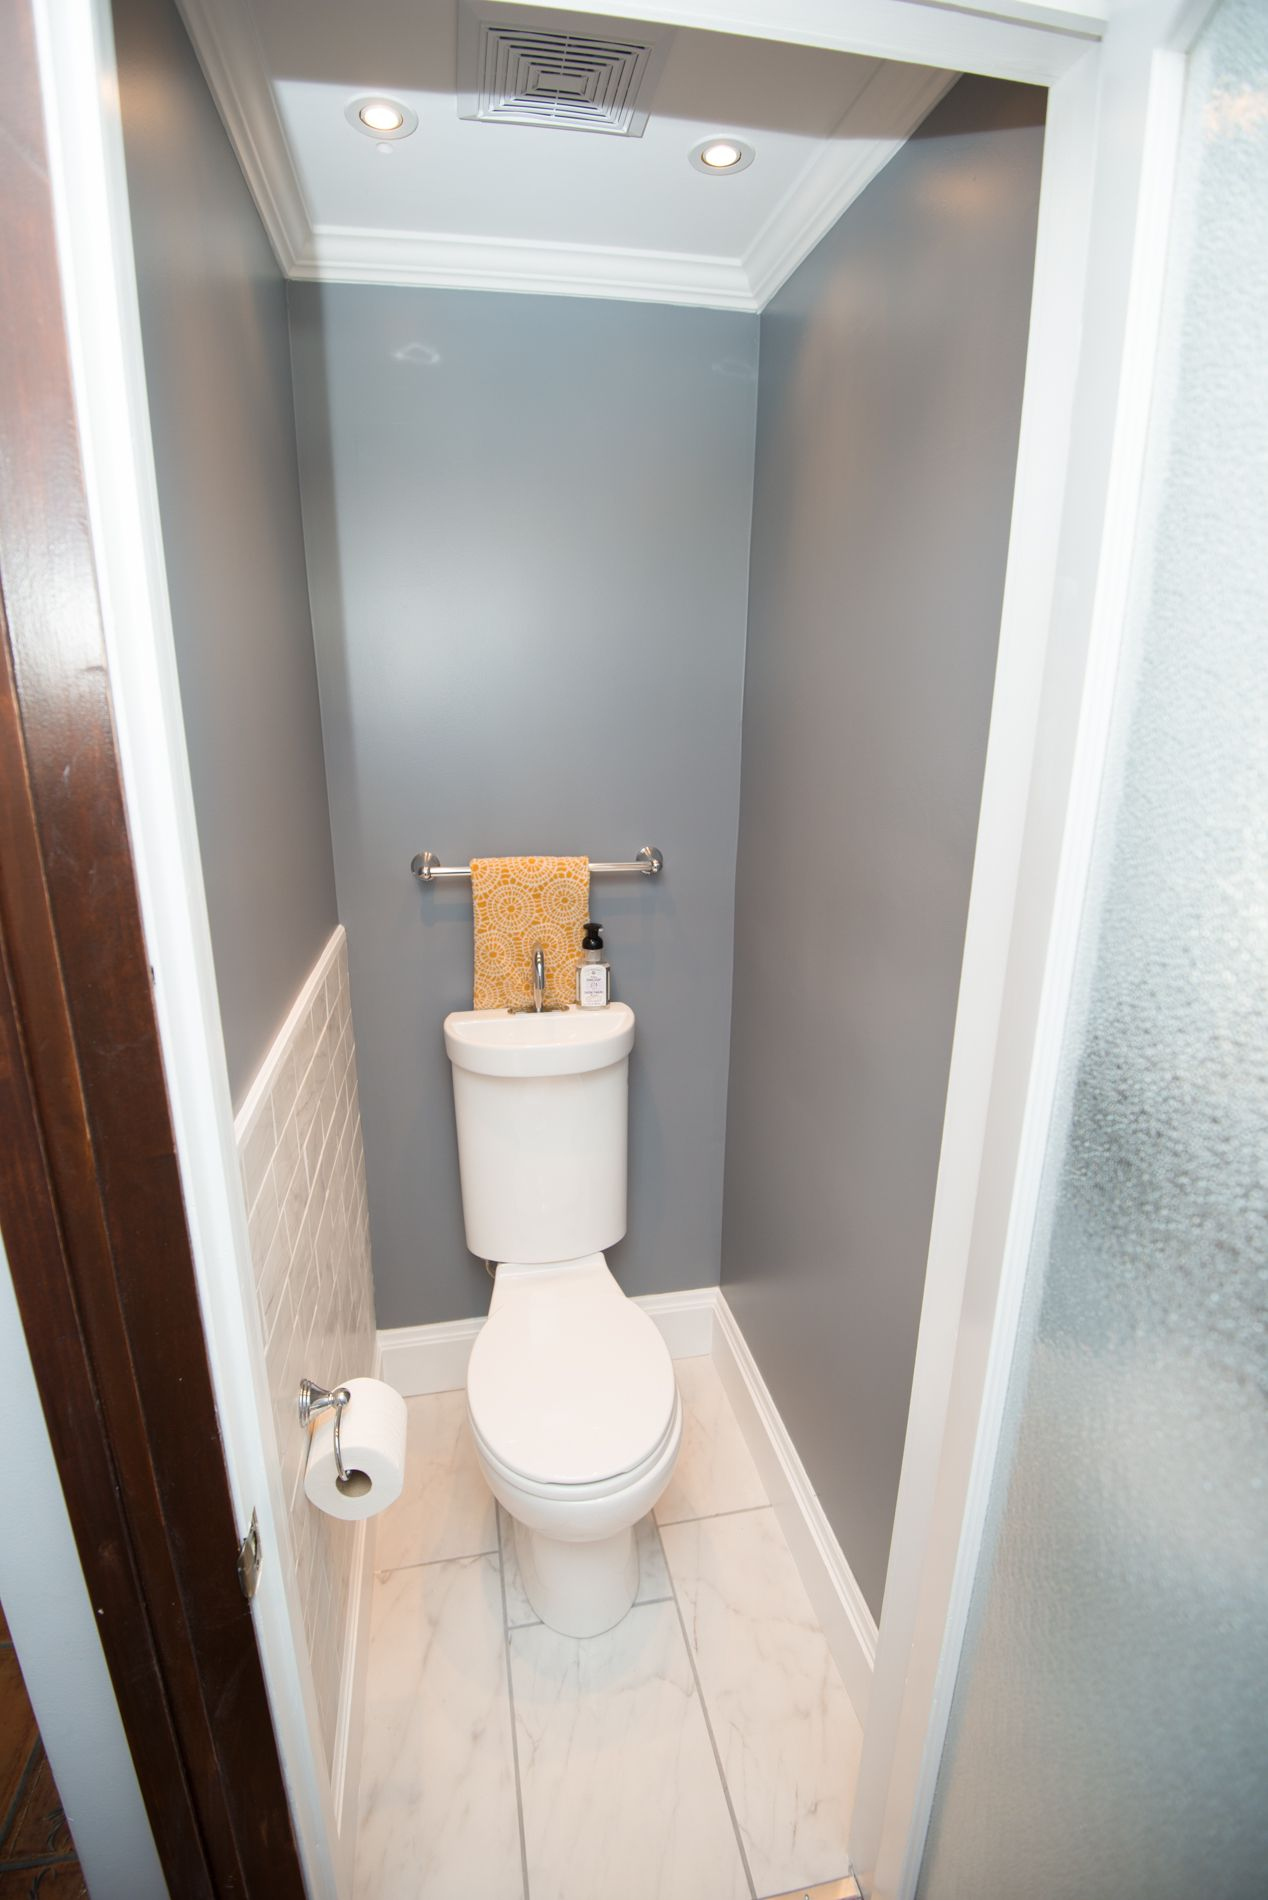 Tiny Powder Room Room Dimensions 44 X 33 It Can Be Done Caroma Profile Smart 305 Toilet Sink Combo Tiny